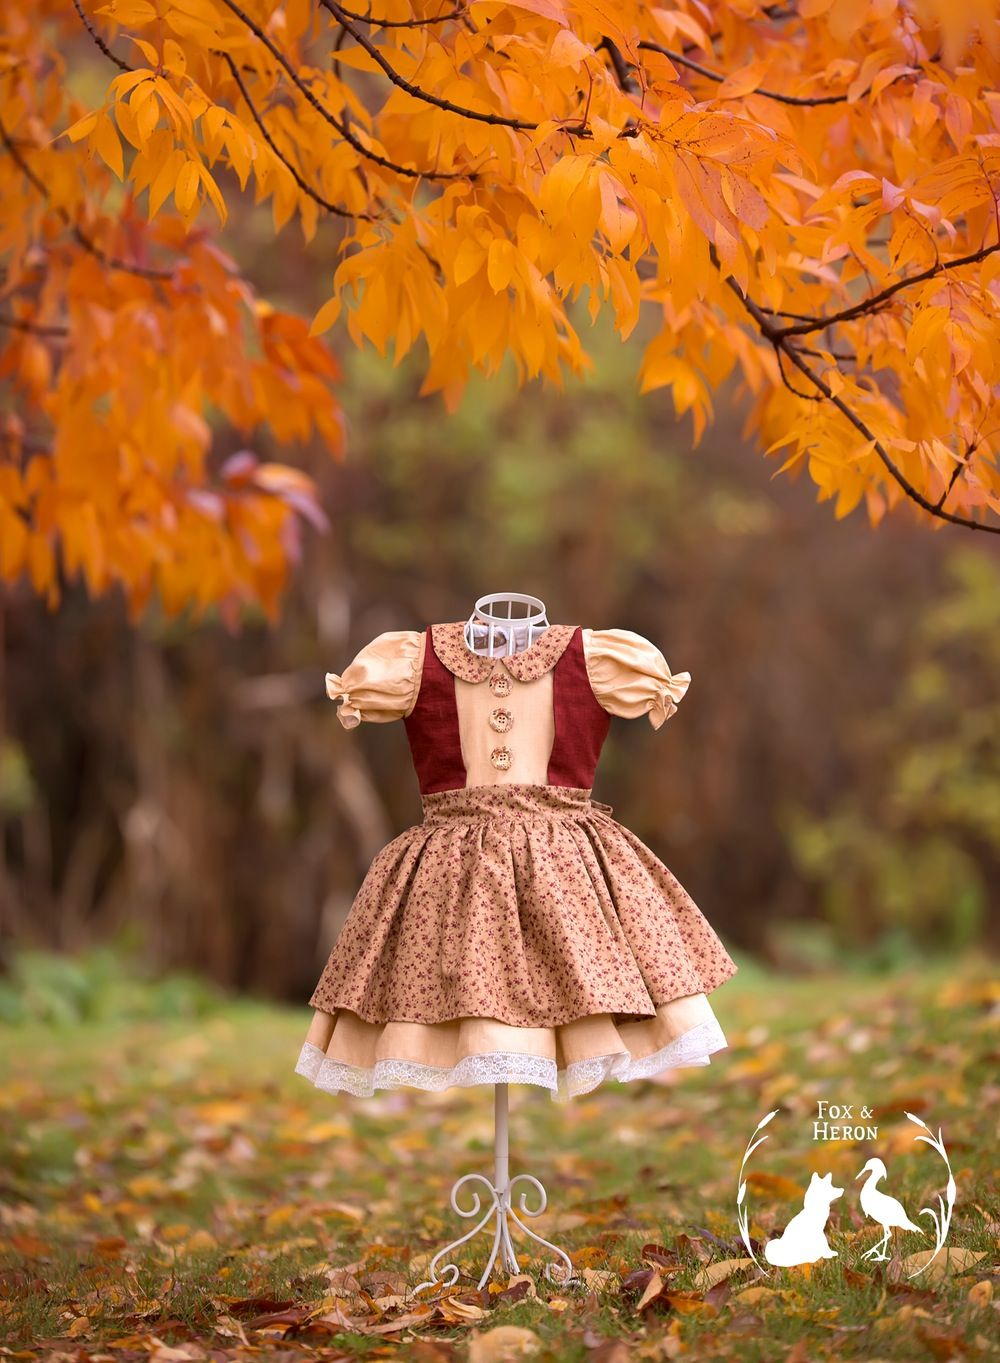 How to dress a child in autumn: preparing for the new season